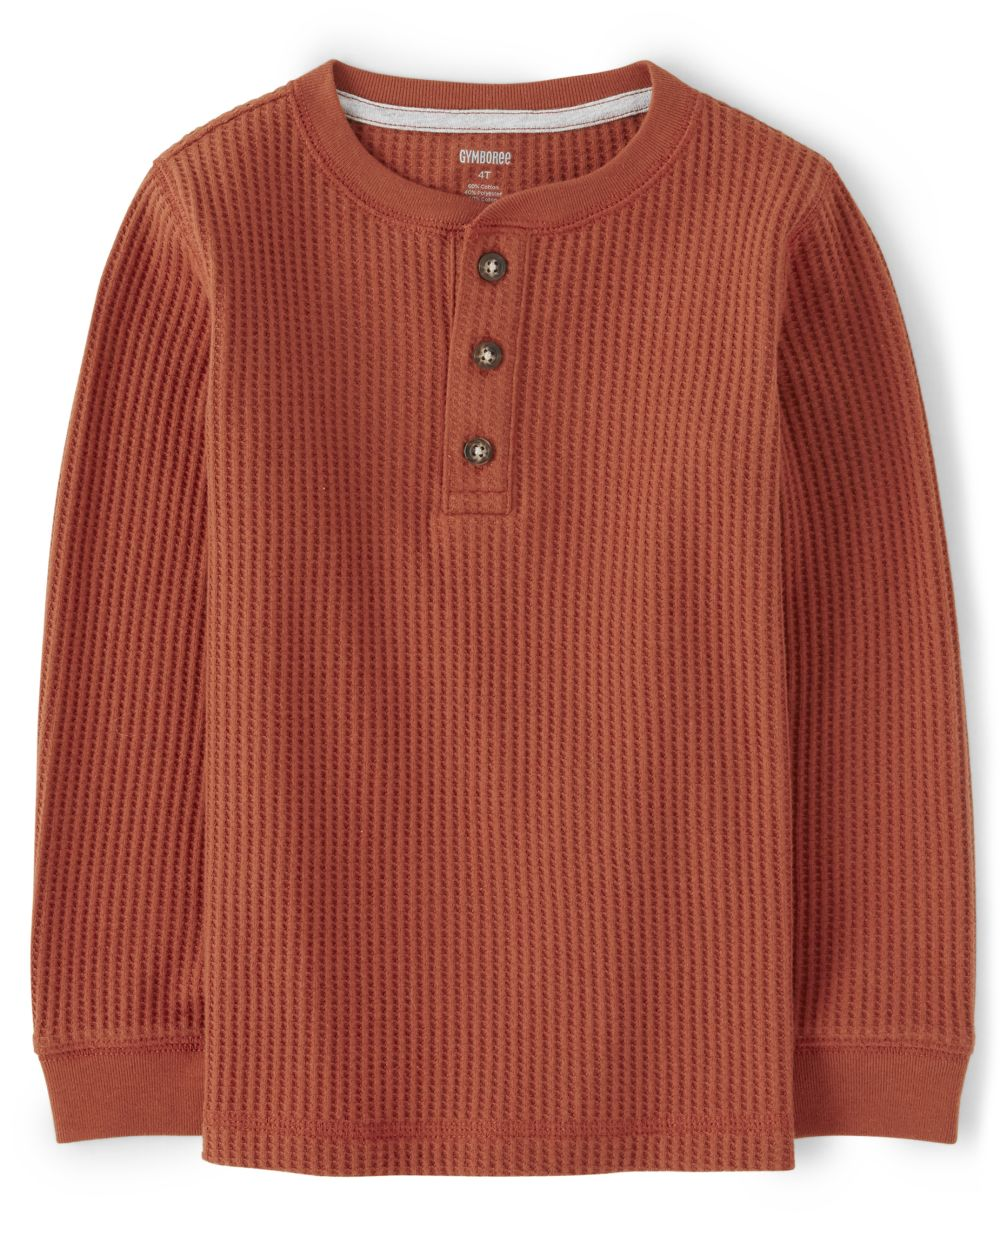 Boys Thermal Henley Top - Every Day Play